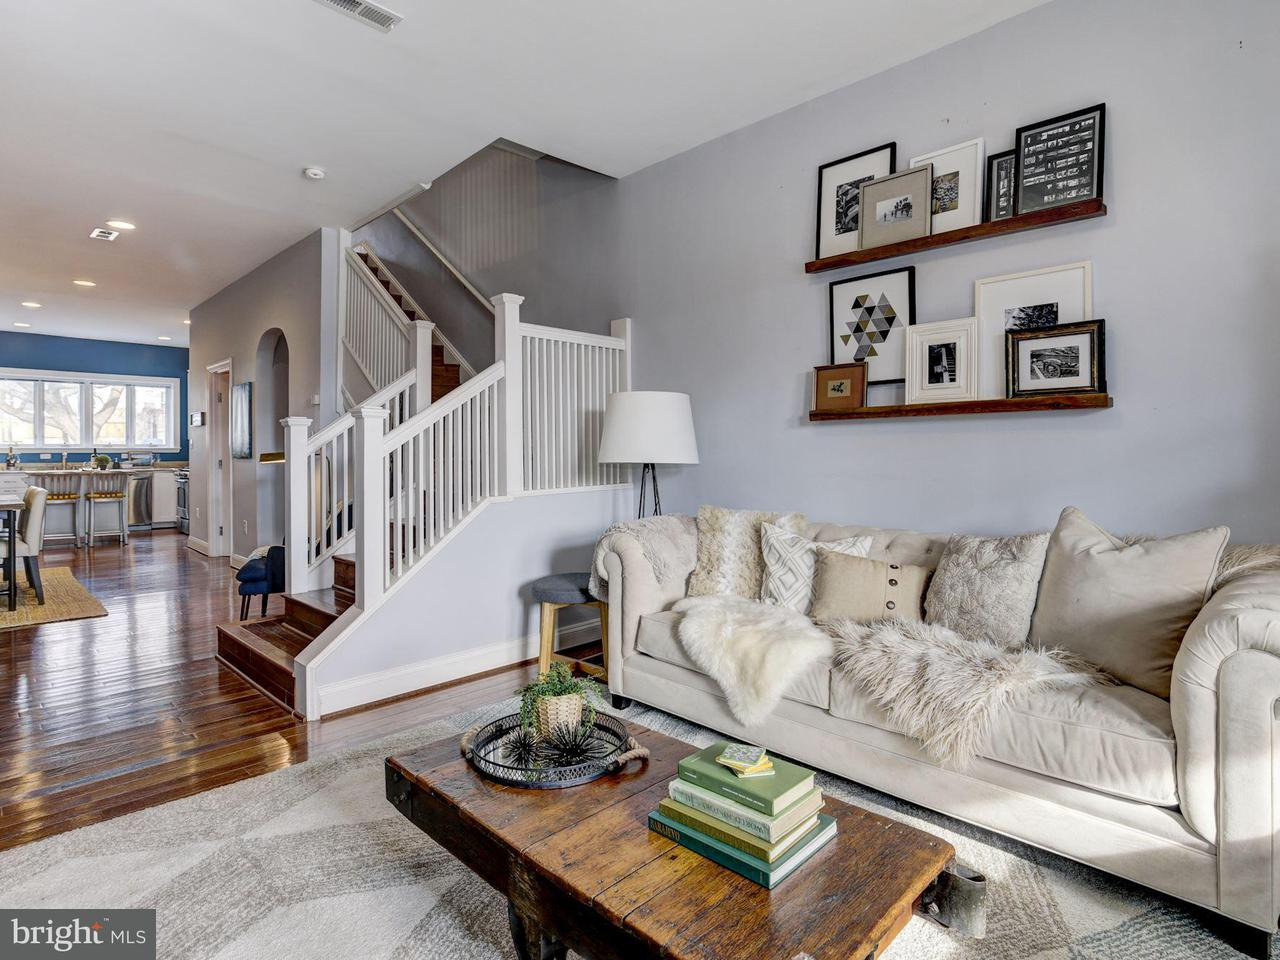 Townhouse for Sale at 419 Upshur St Nw 419 Upshur St Nw Washington, District Of Columbia 20011 United States